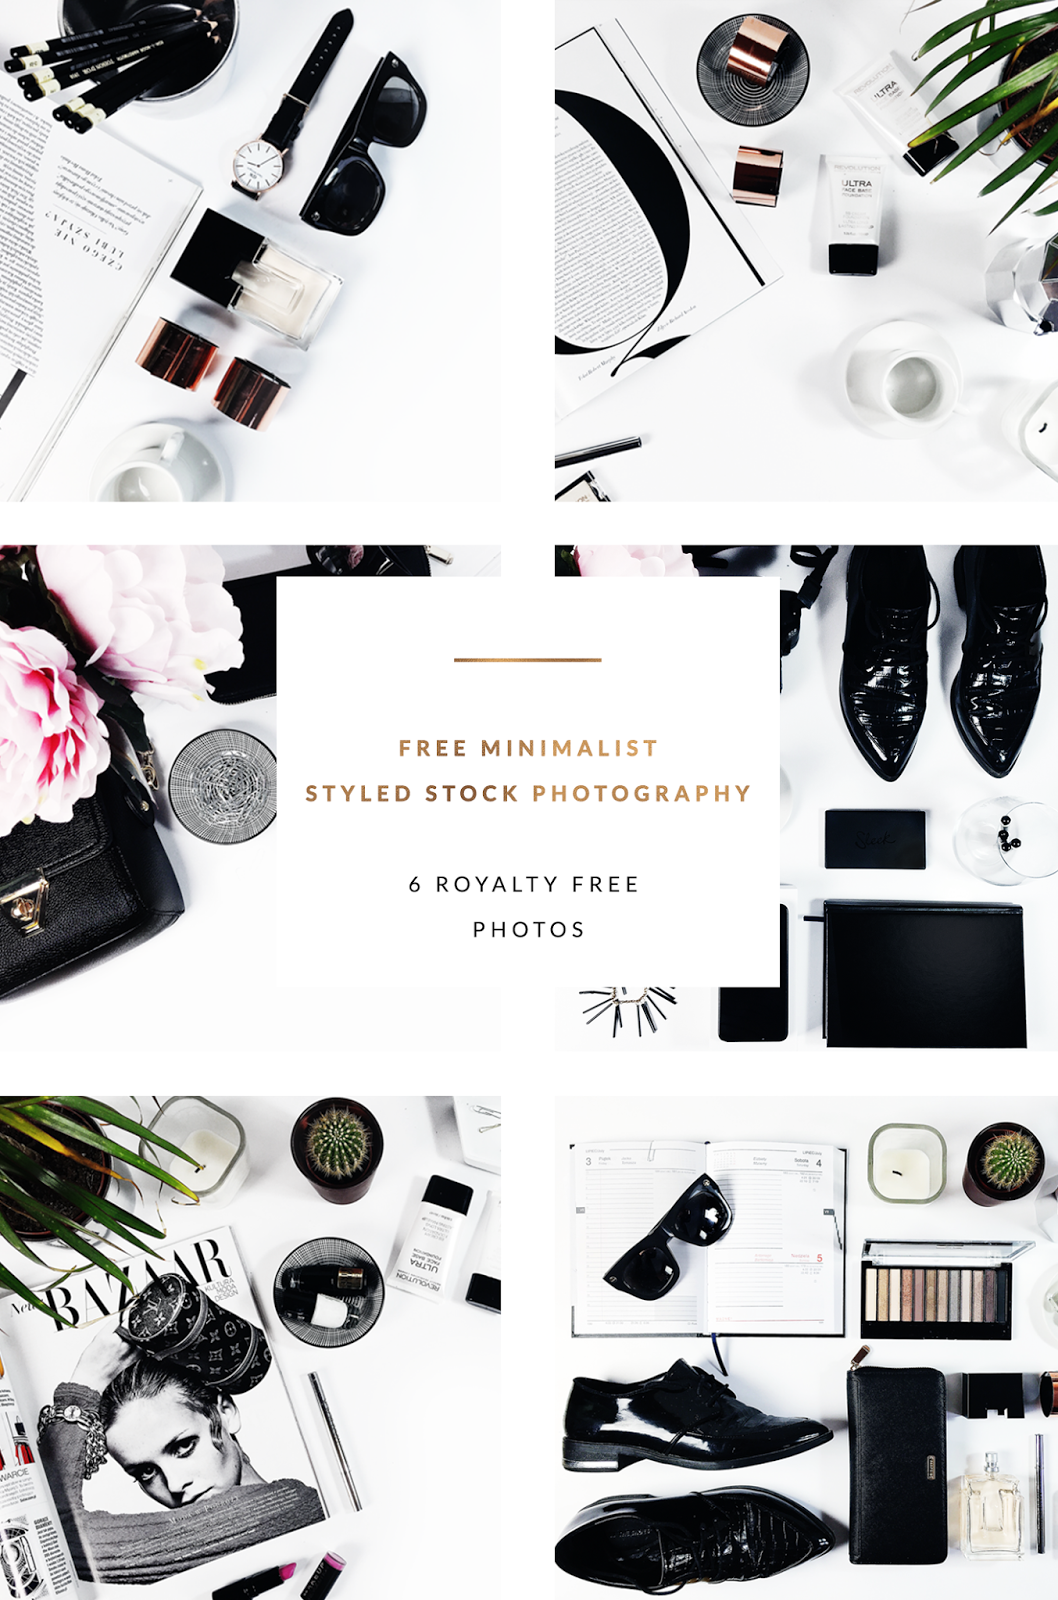 Photographystockphoto photographystockimages photographystock picture - Freebies Free Minimalist Styled Stock Photography All Photos Can Be Used In Commercial And